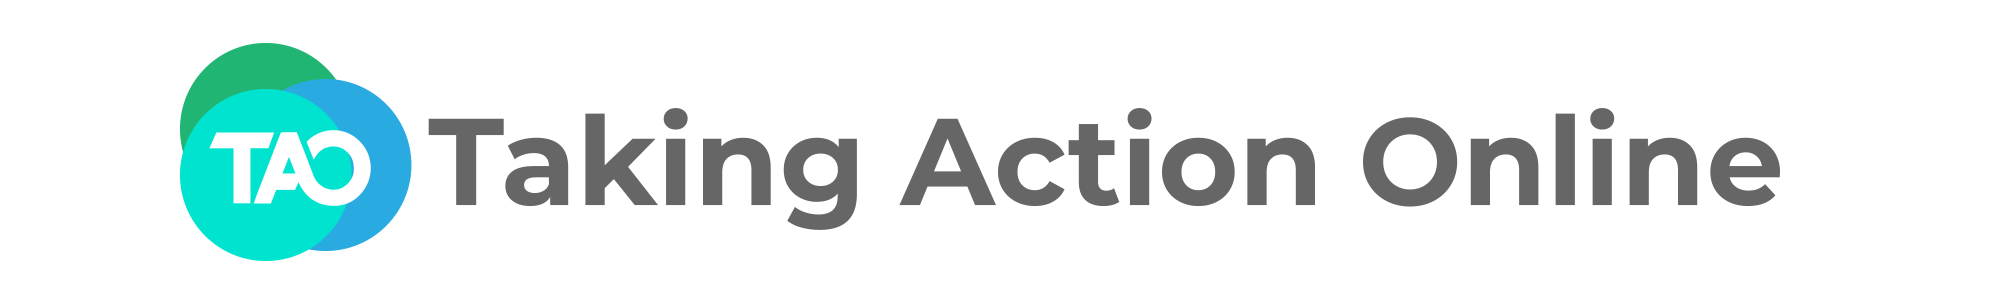 Taking Action Online